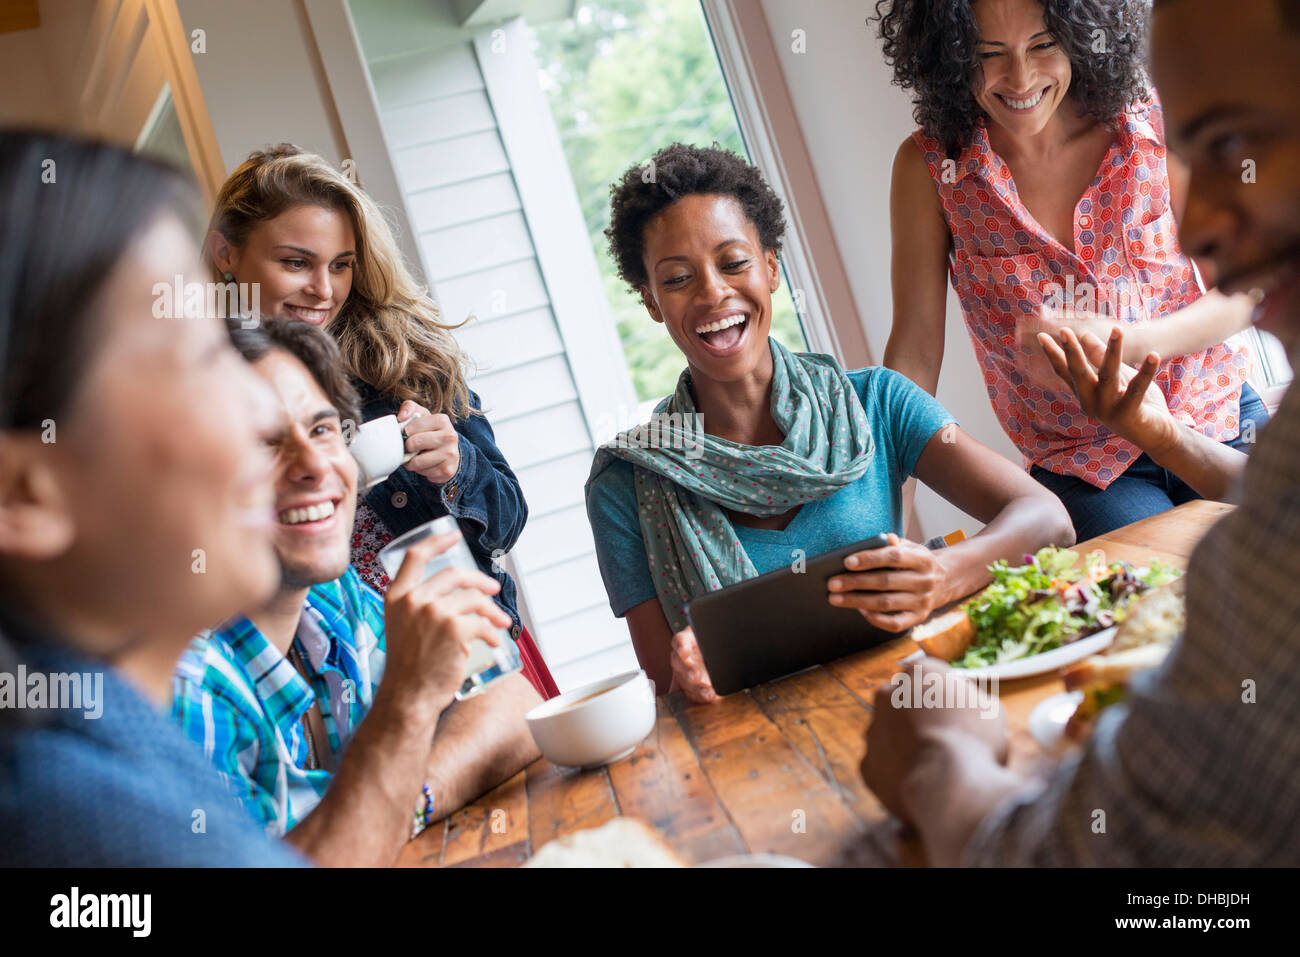 A group of people meeting in a cafe. Using digital tablets and smart phones. Having a meal together. - Stock Image